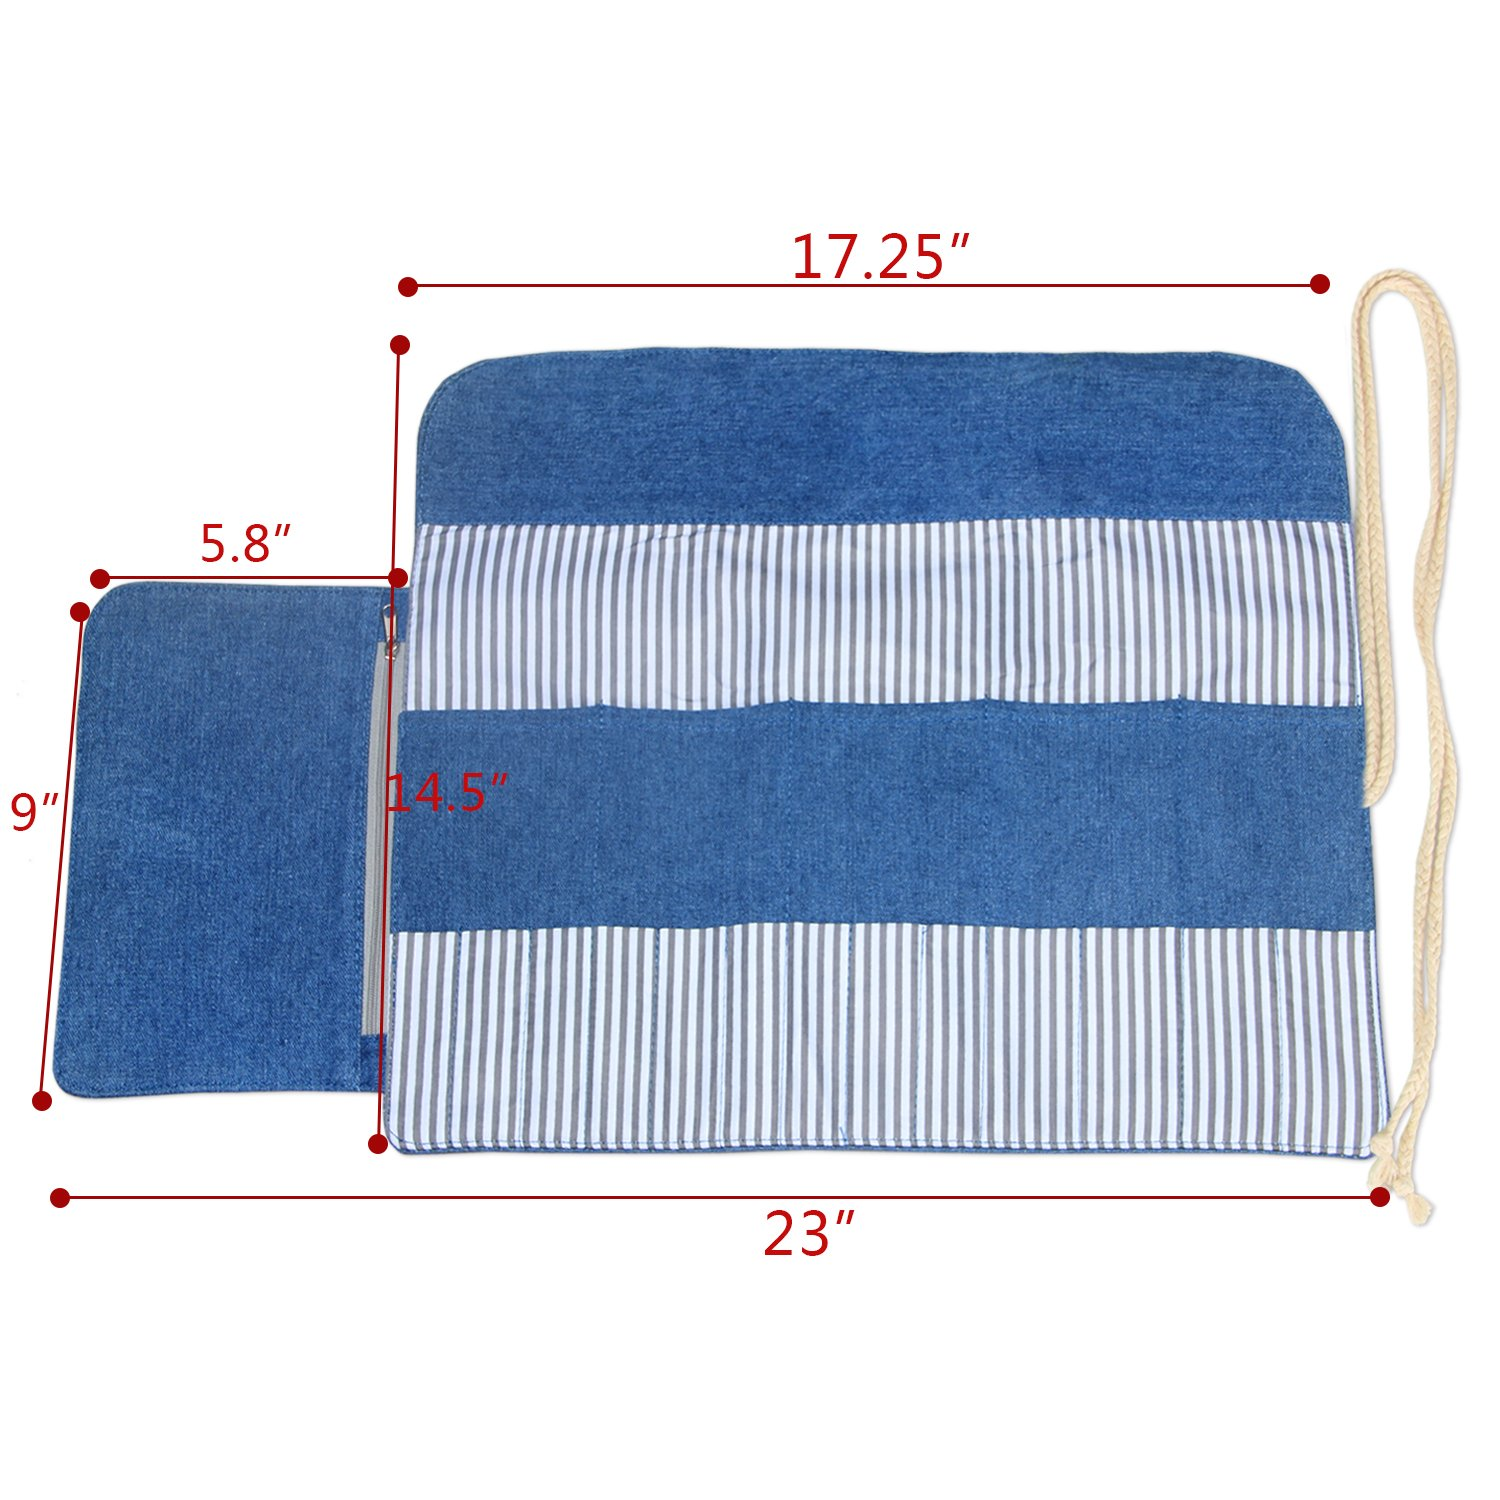 Luxja Knitting Needles Organizer, Rolling Bag for Knitting Needles (up to 10 Inches), Crochet Hooks and Accessories (No Accessories Included), Blue by LUXJA (Image #6)